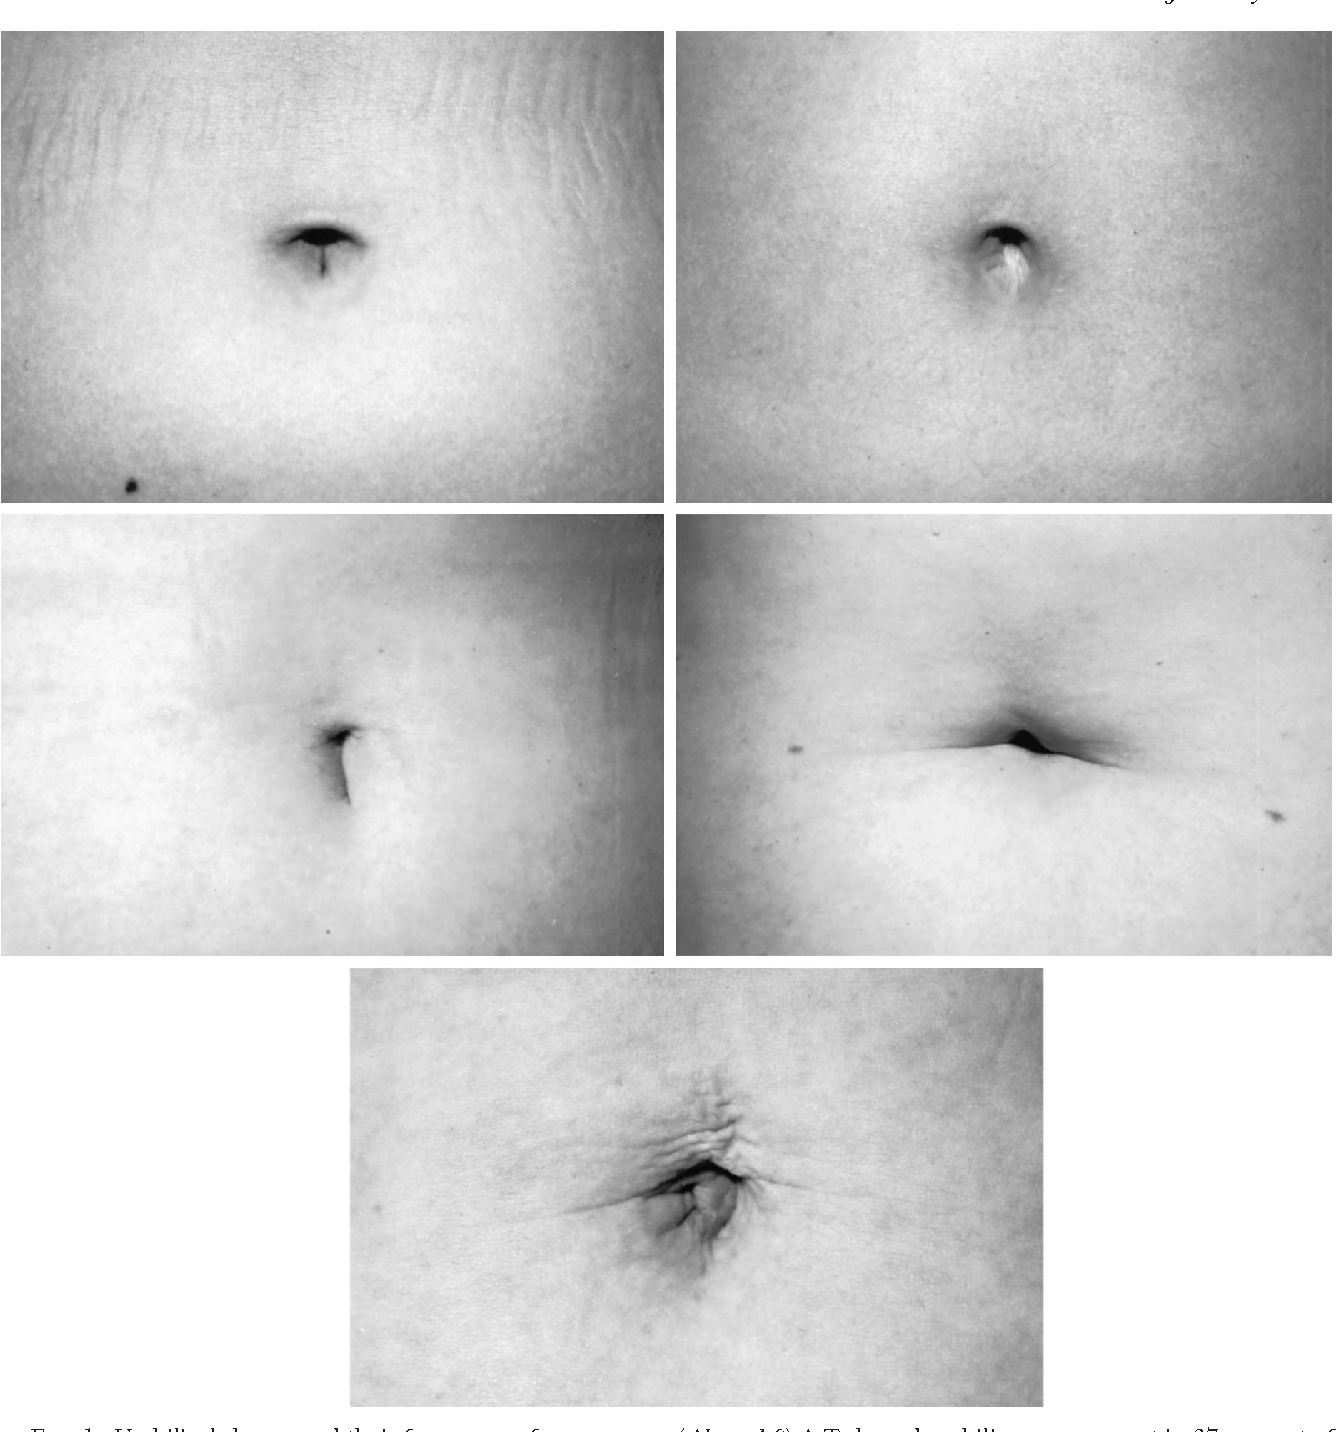 FIG. 1. Umbilical shapes and their frequency of occurrence. (Above, left) A T-shaped umbilicus was present in 37 percent of subjects (n 5 54); (above, right) an oval-shaped umbilicus was present in 22 percent (n 5 32); (center, left) a vertically shaped umbilicus was present in 17 percent (n 5 25); (center, right) a horizontally shaped umbilicus was present in 14 percent (n 5 21); and (below) distorted shapes were seen in 10 percent (n 5 15).